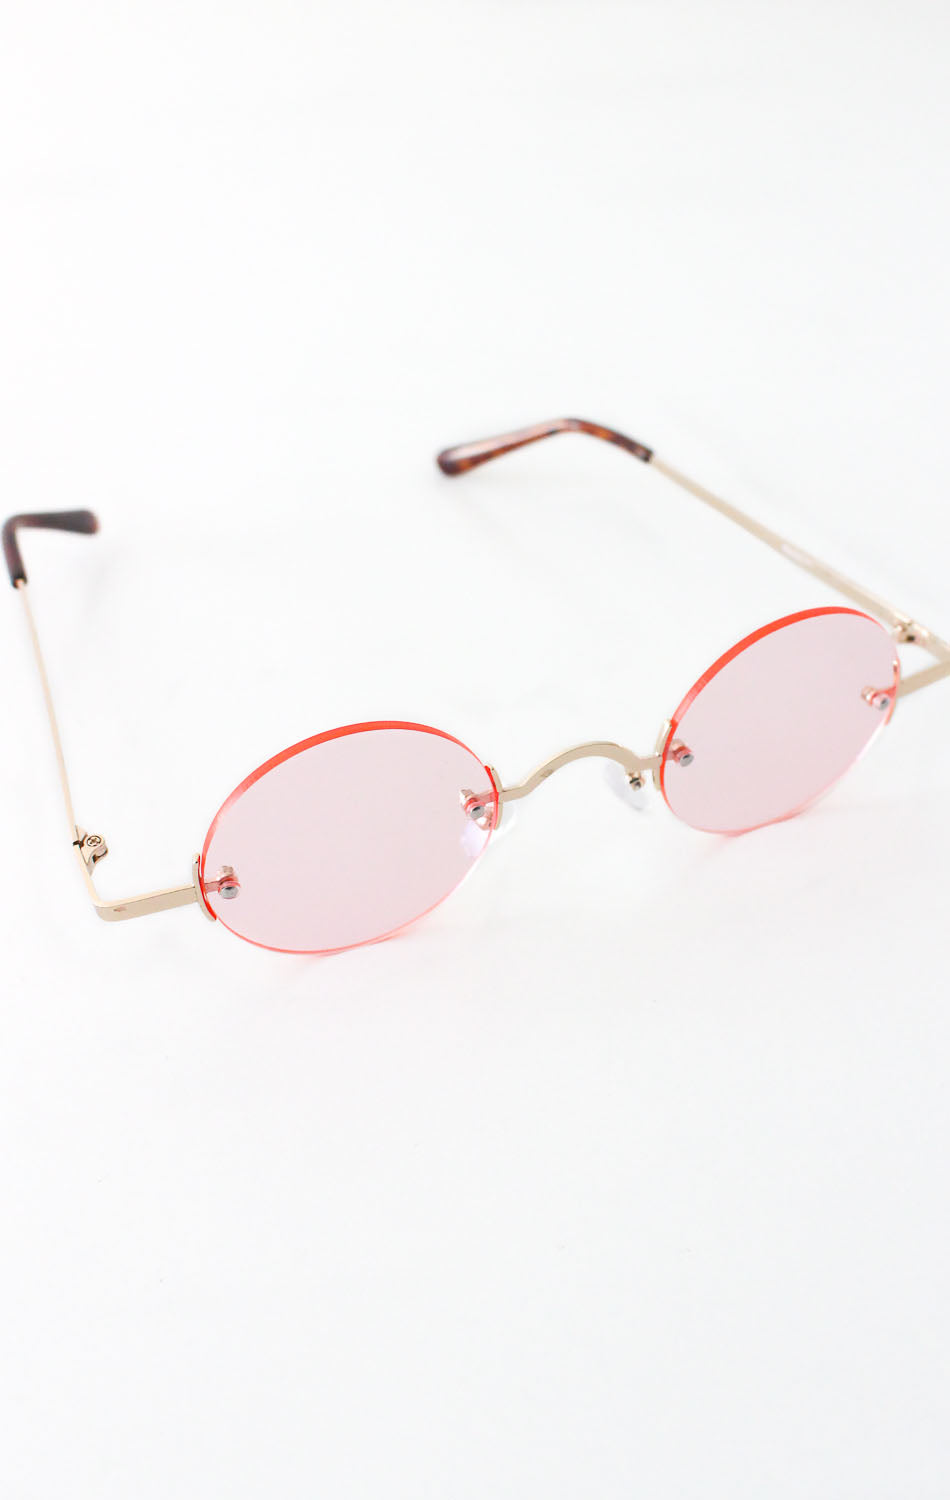 NYCT Clothing Vintage Inspired Round Sunglasses - Pink